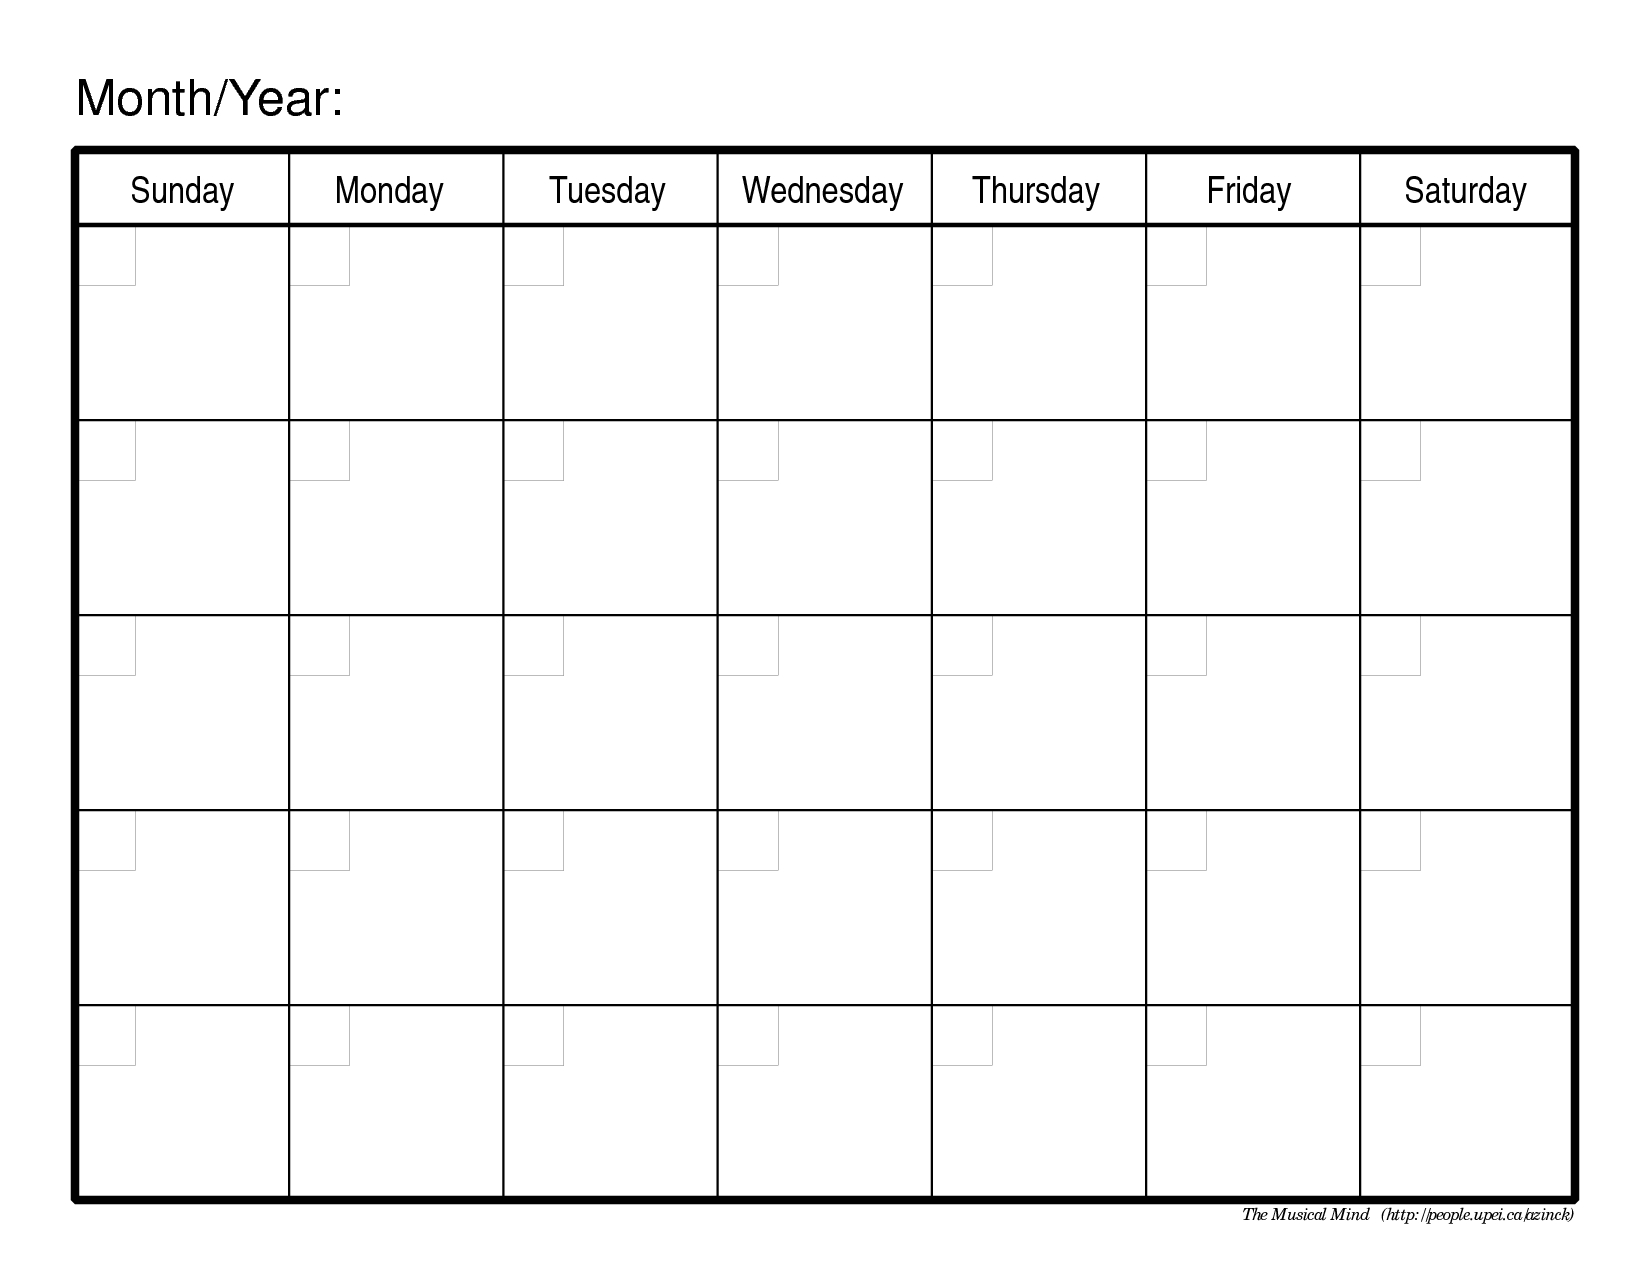 Monthly Calendar Template   Free Printable Calendar  Free Printable Month Calendar